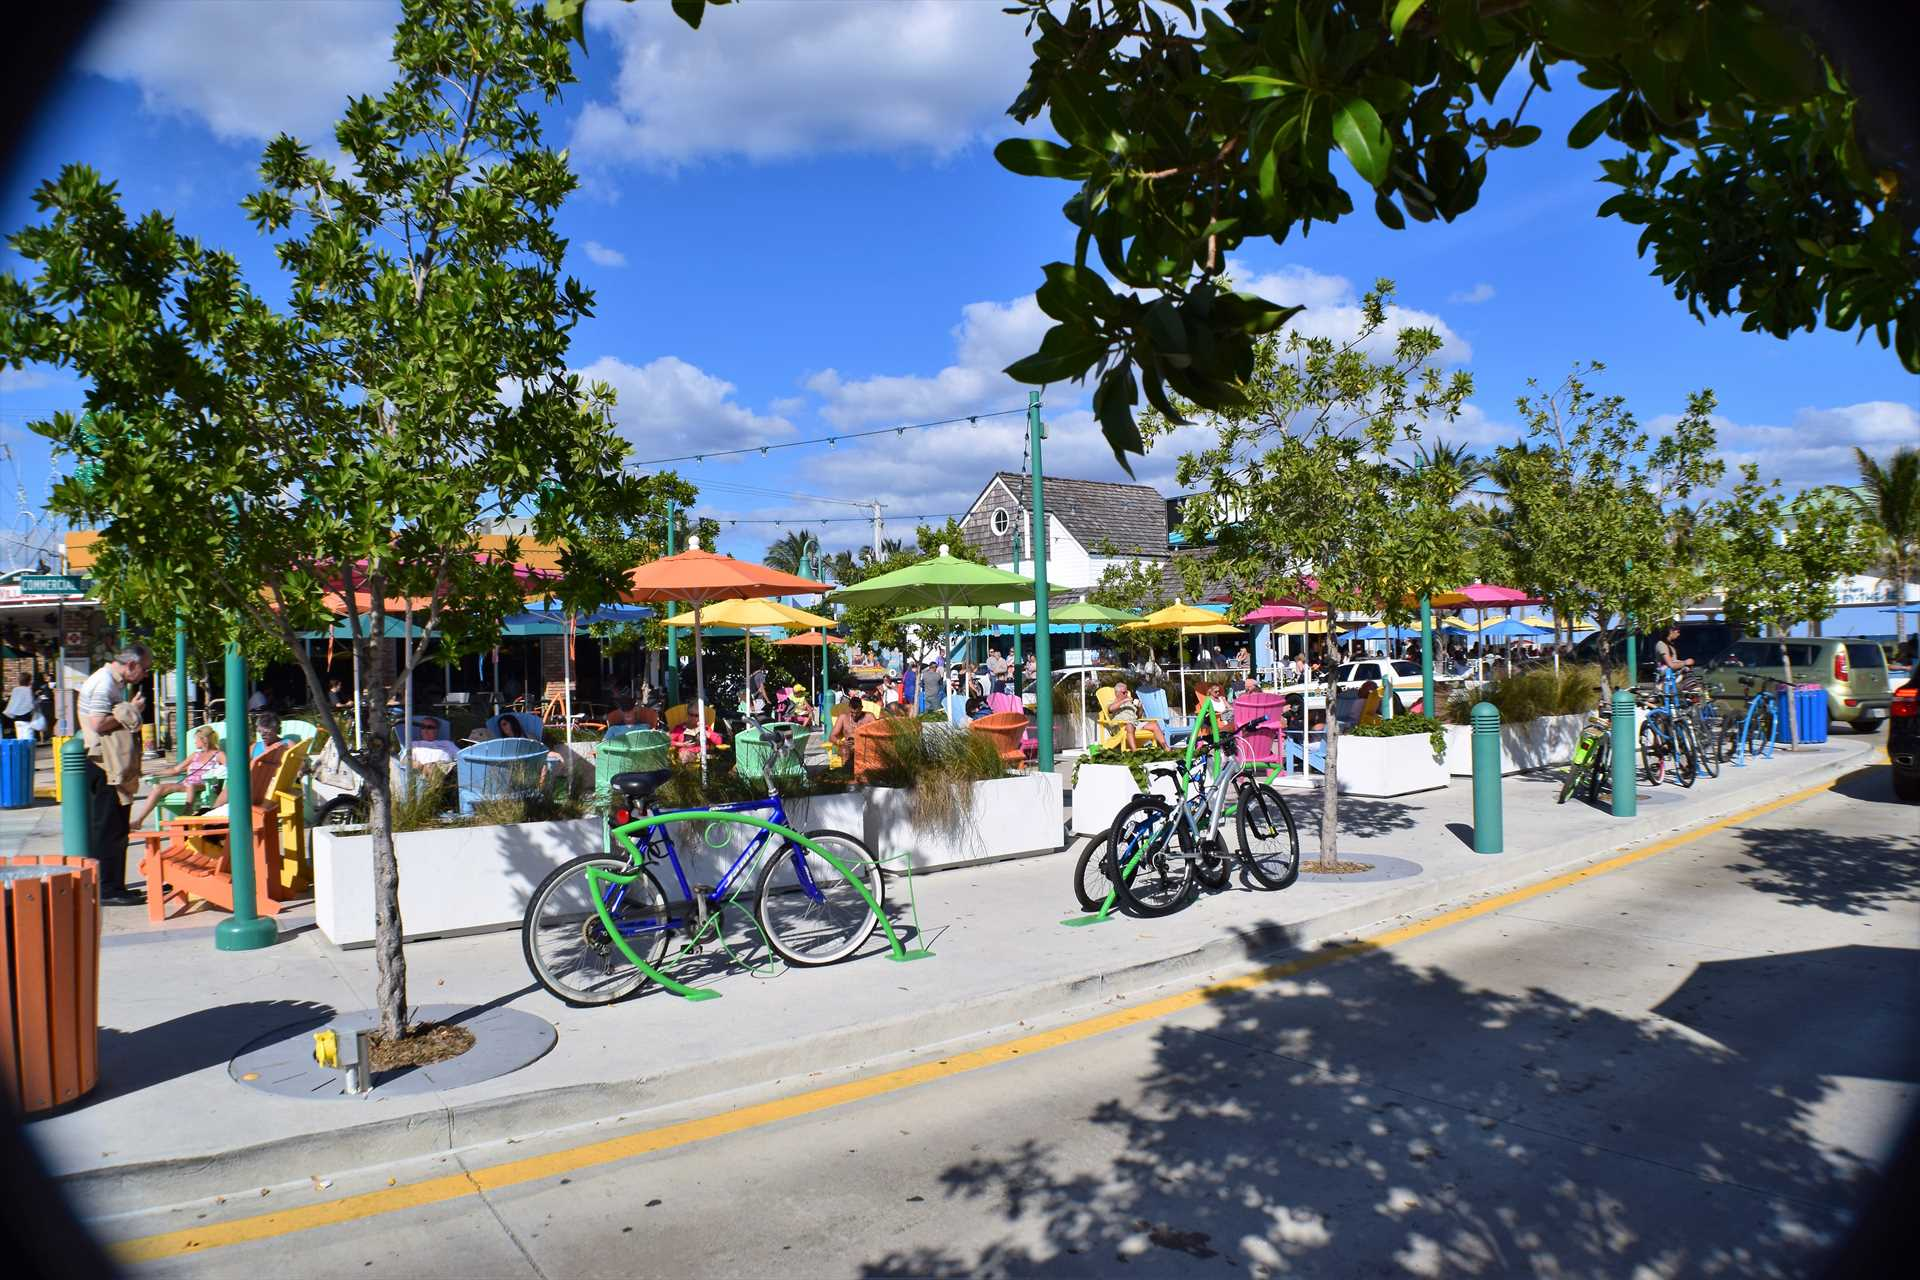 Your walk to the beach is filled with colorful shops and sig